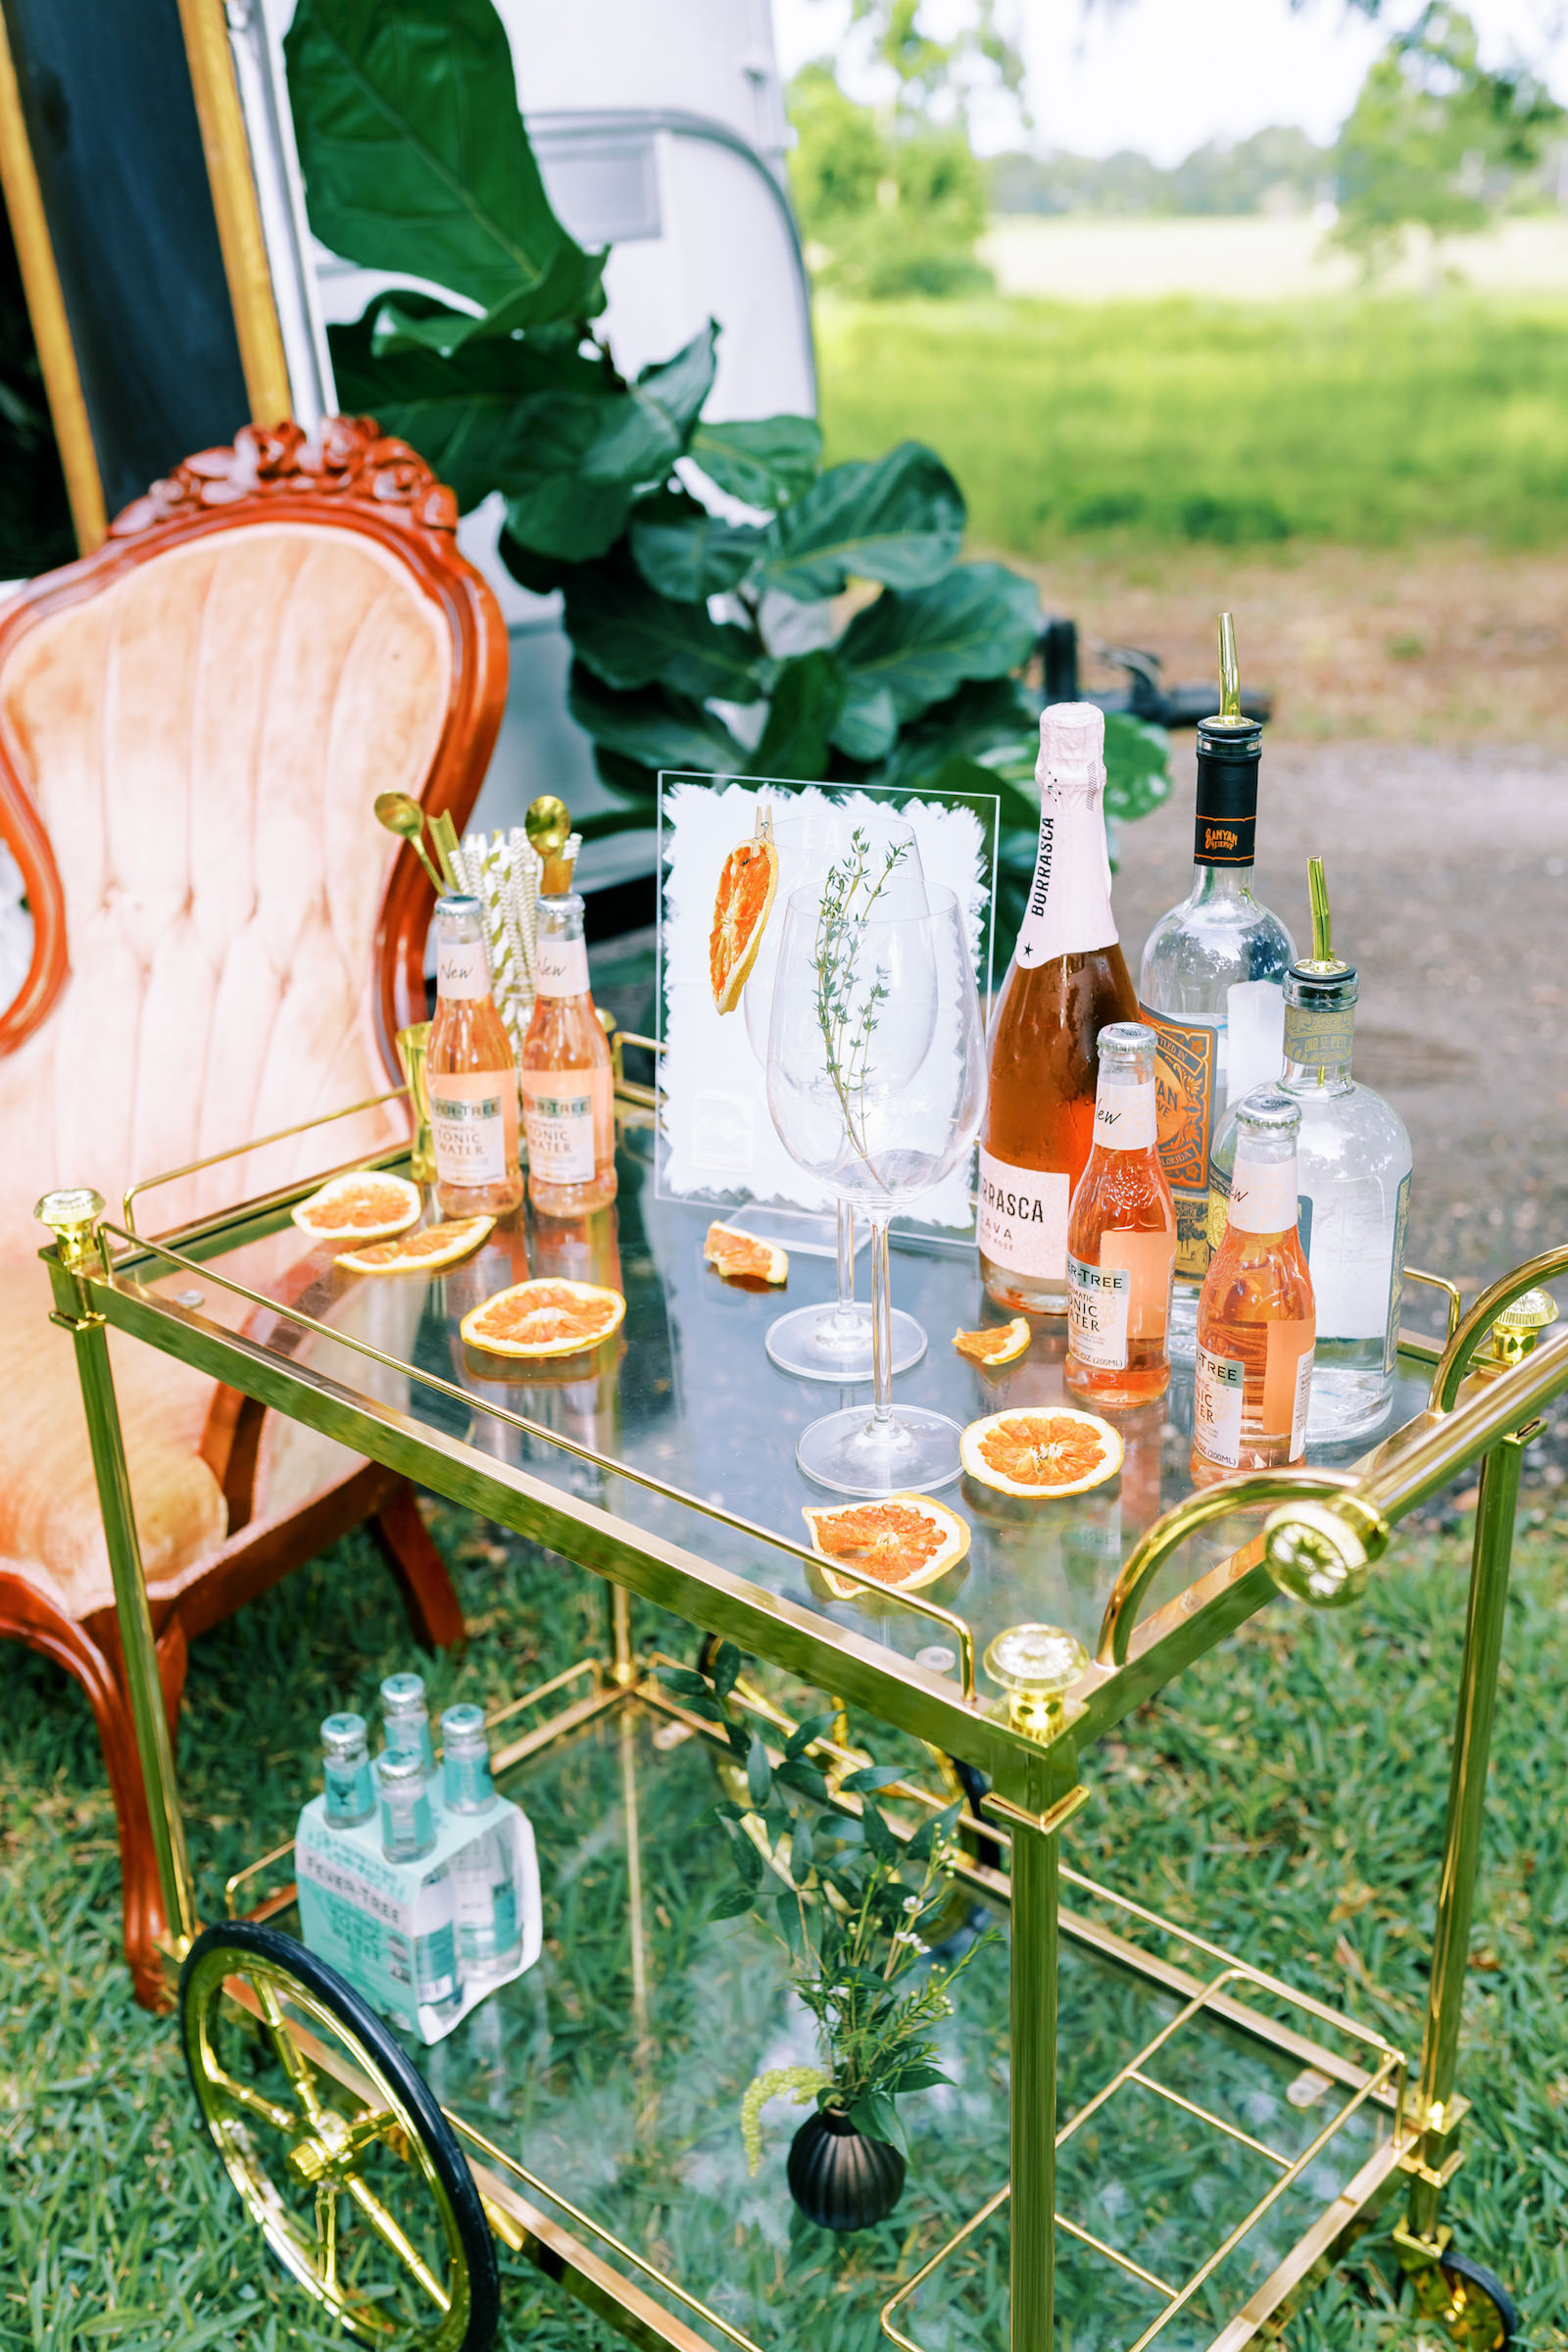 Vintage Inspired Cocktail Hour And Bar Cart Gold Cart With Rose Pink Beverages Tampa Bay Wedding Planner Eventfull Weddings Marry Me Tampa Bay Local Real Wedding Inspiration Vendor